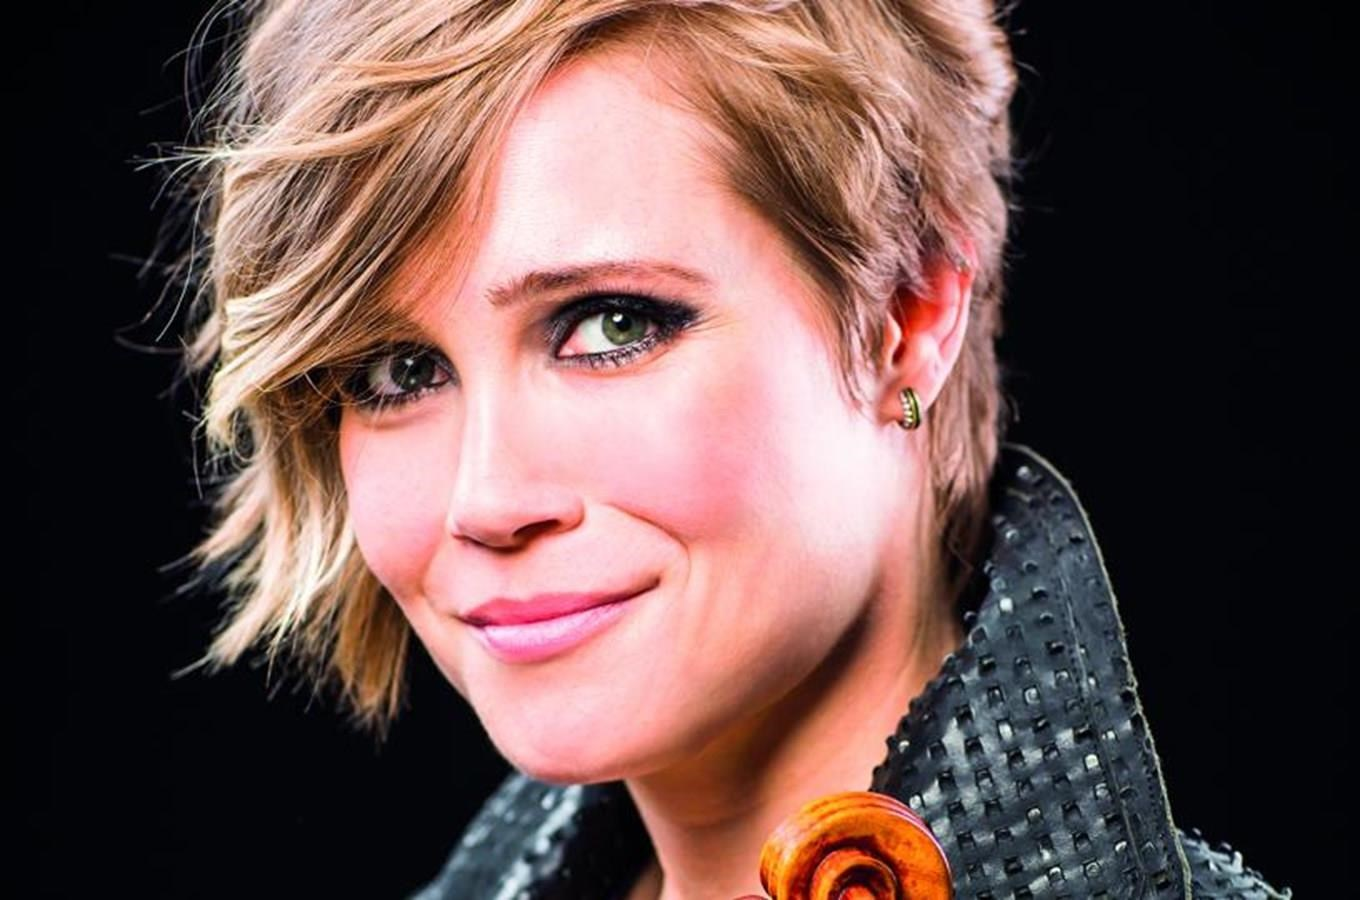 Leila Josefowicz|foto: Chris Lee